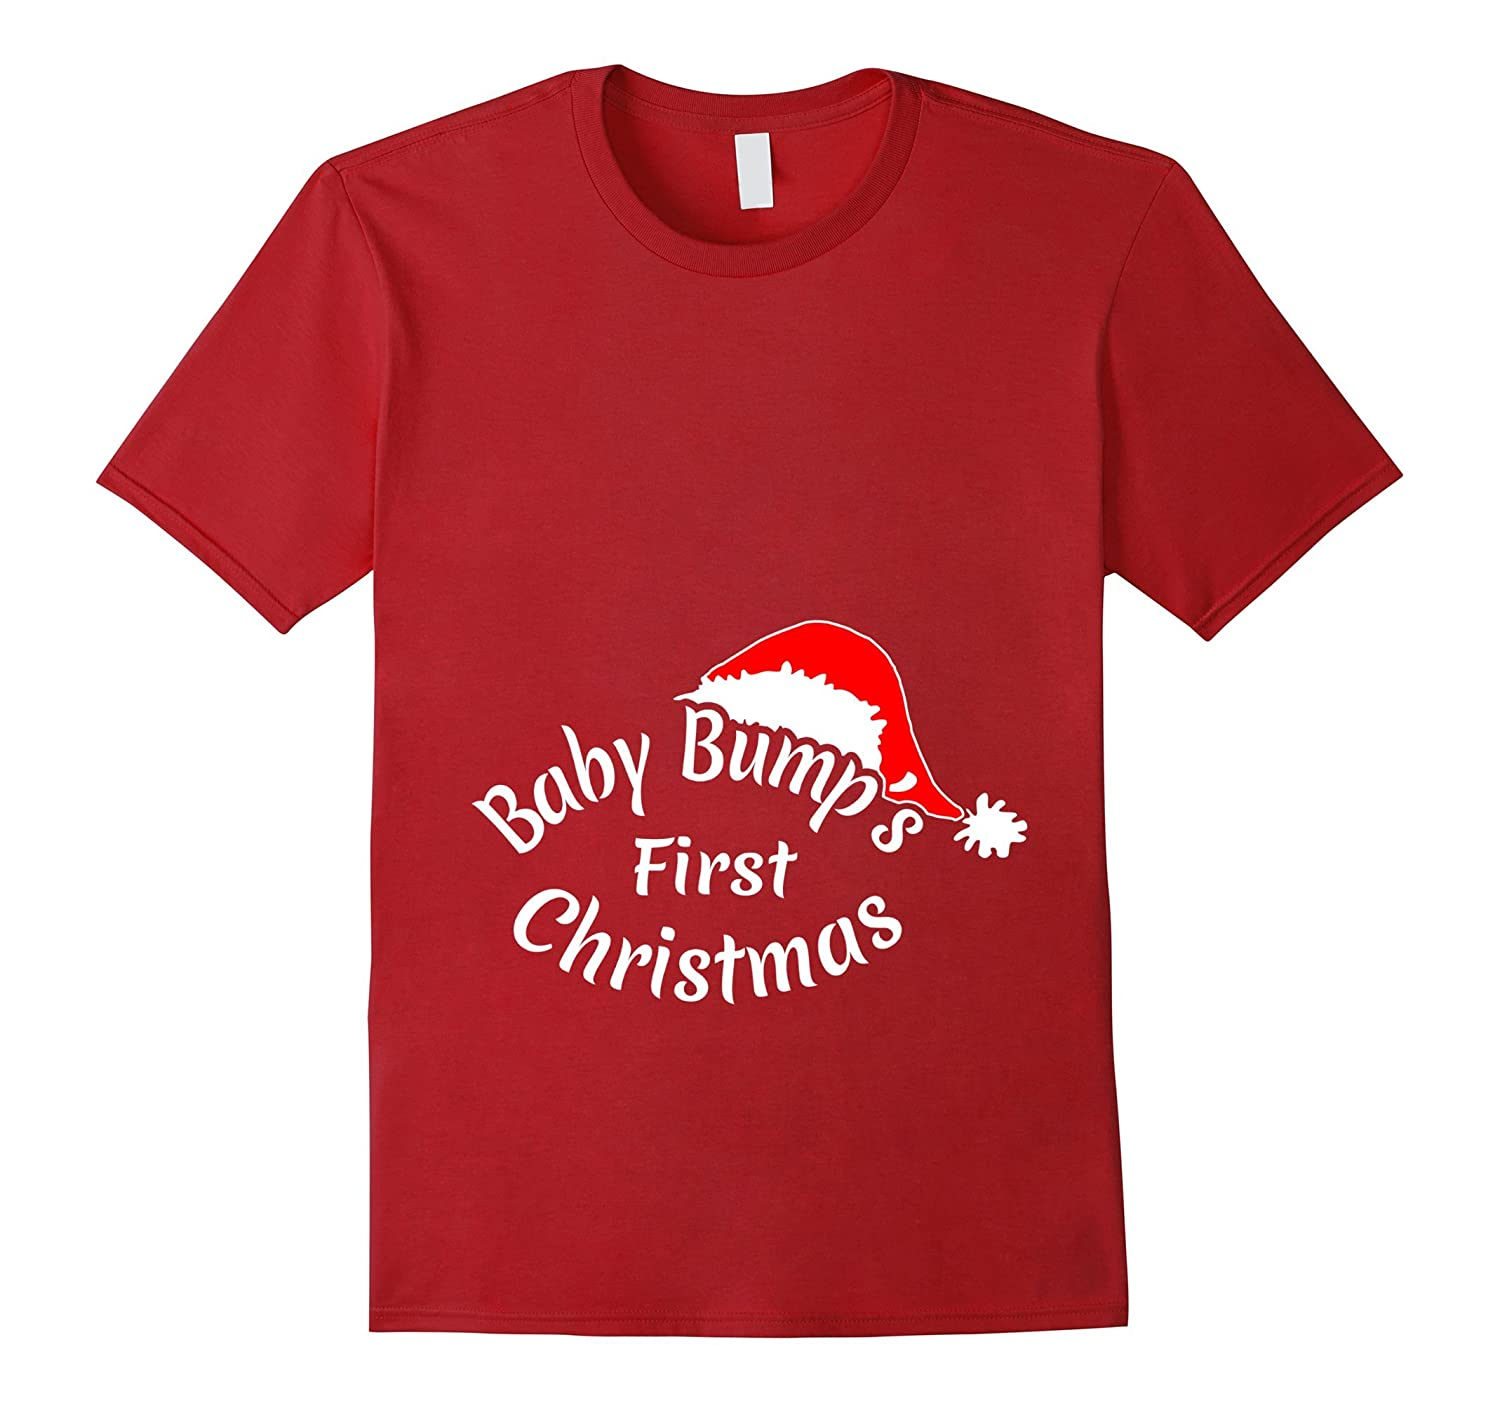 Christmas Maternity T Shirt – Baby Bumps First Xmas